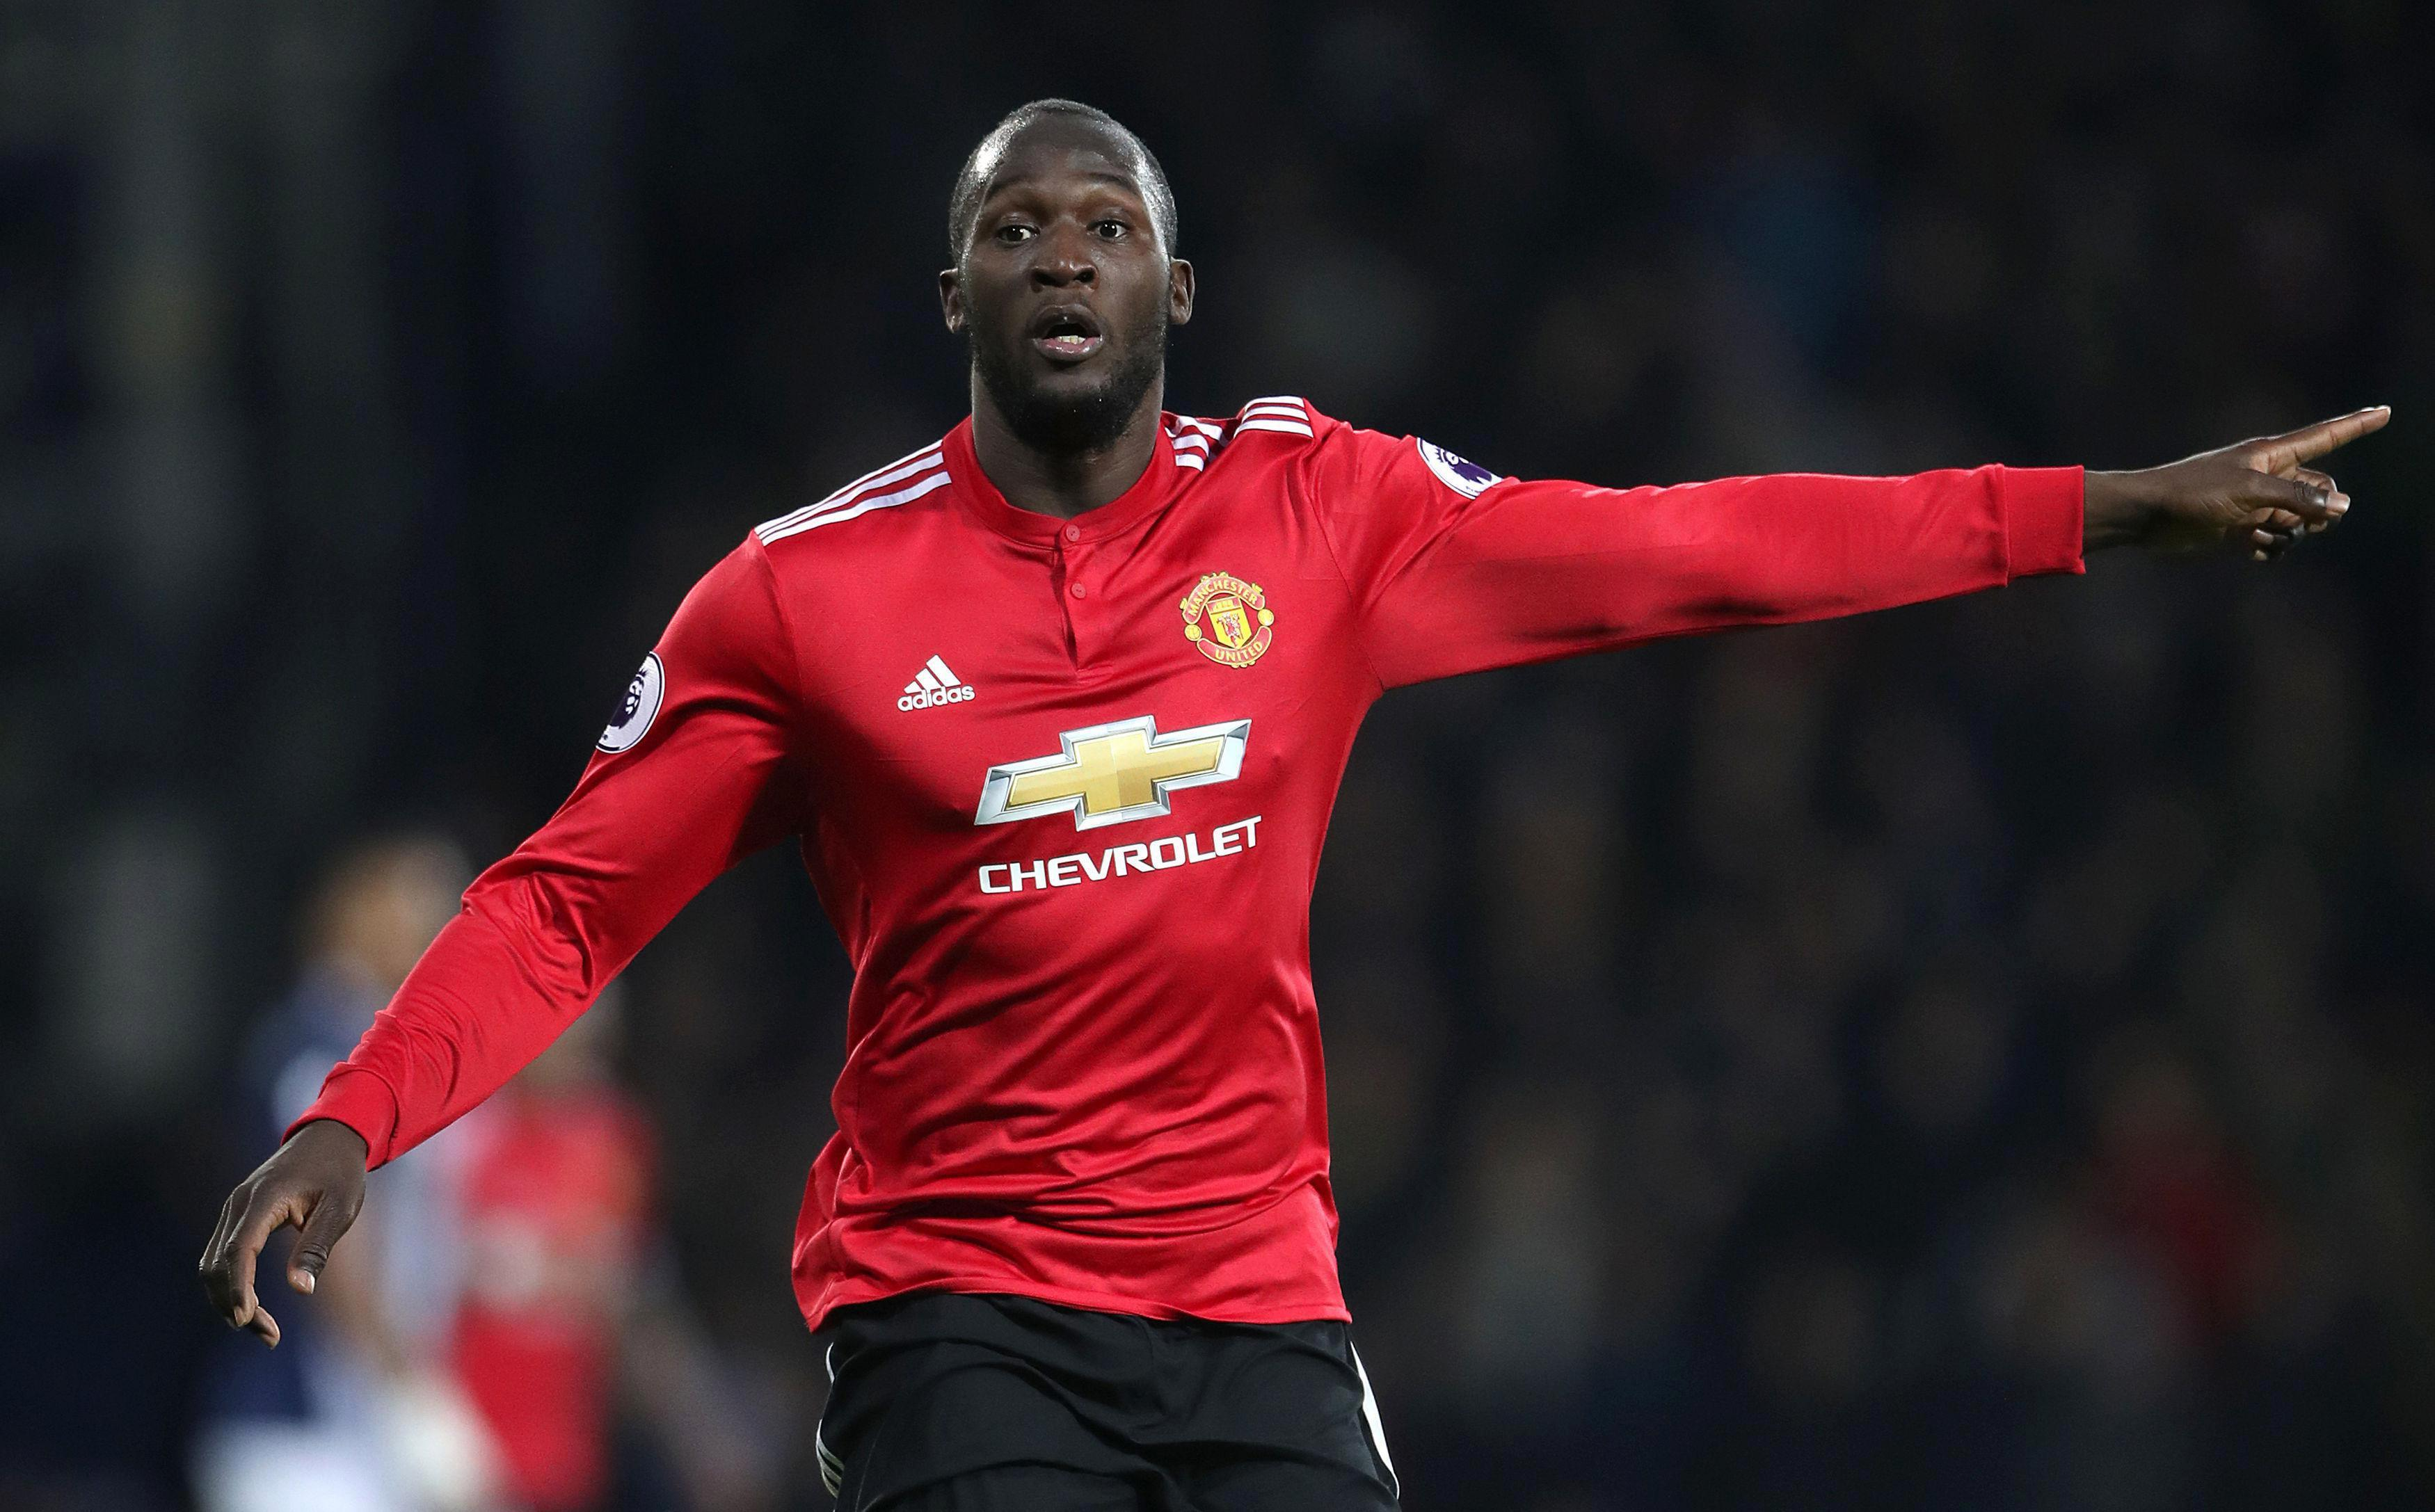 Lukaku was dropping deep to help out his midfield and try to create chances